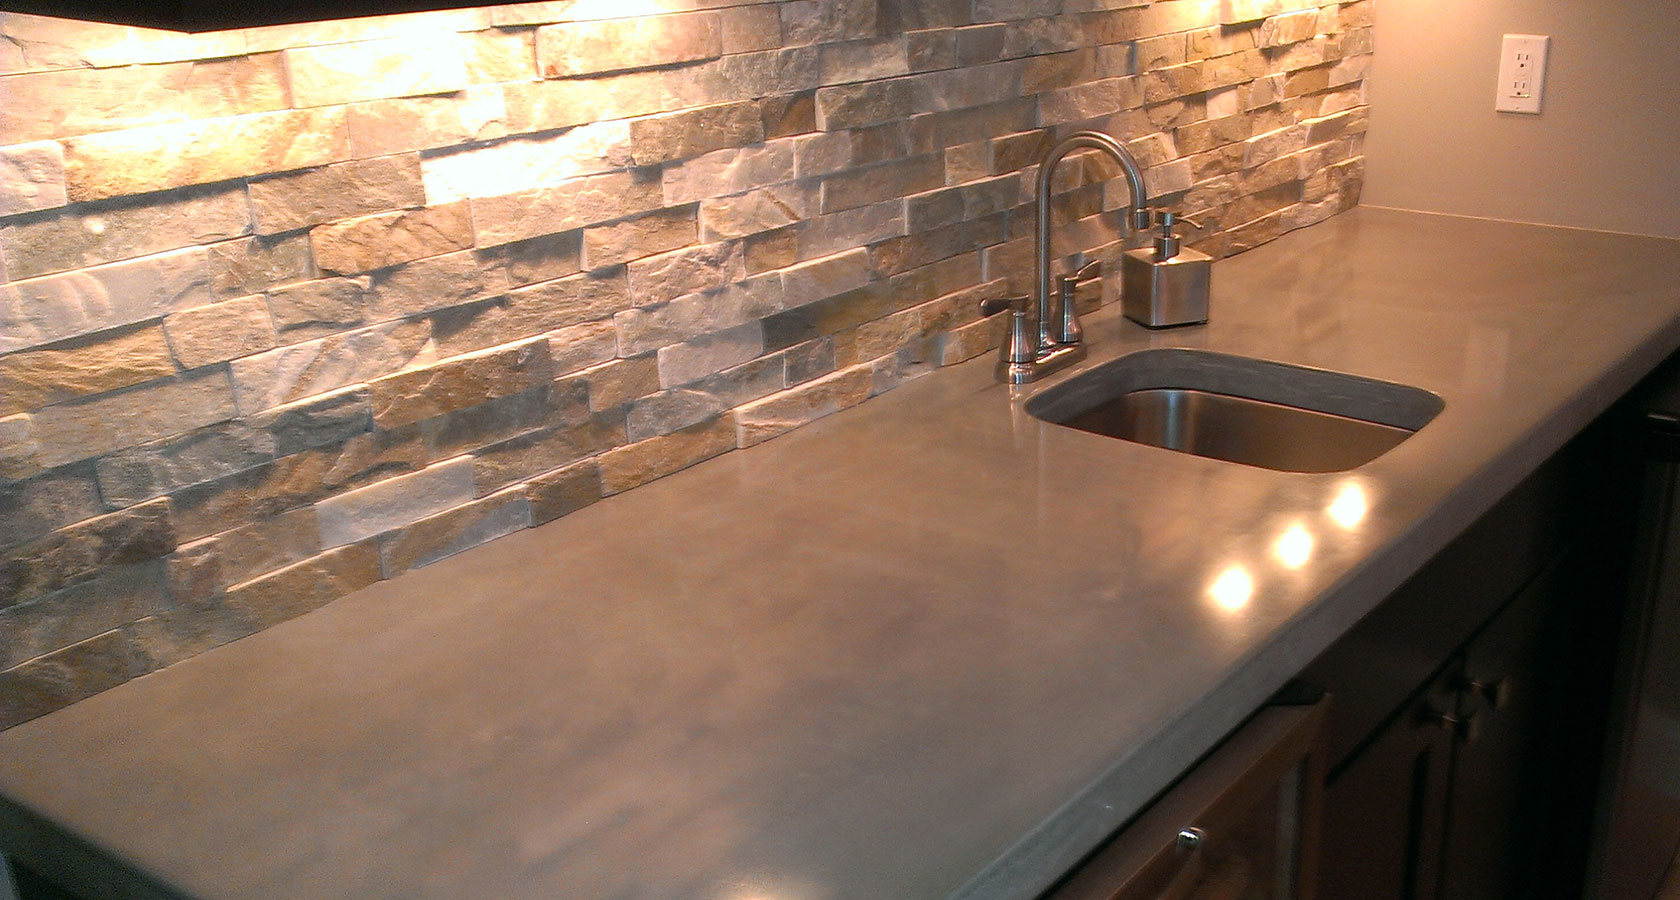 Countertops : Most Popular Types of Kitchen Countertops Materials - HGNV.COM